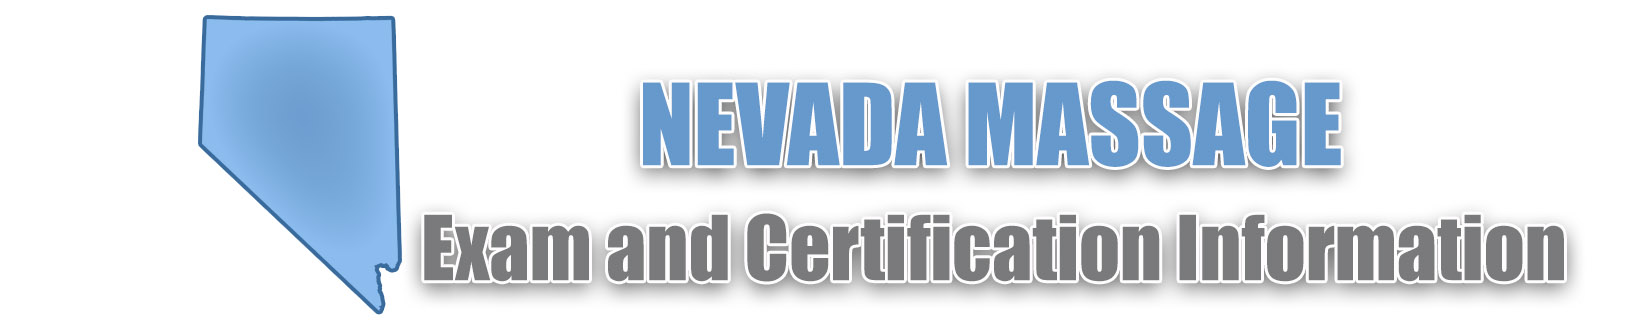 Nevada Massage Therapy License Board Certification Examination And Application Process For 2019